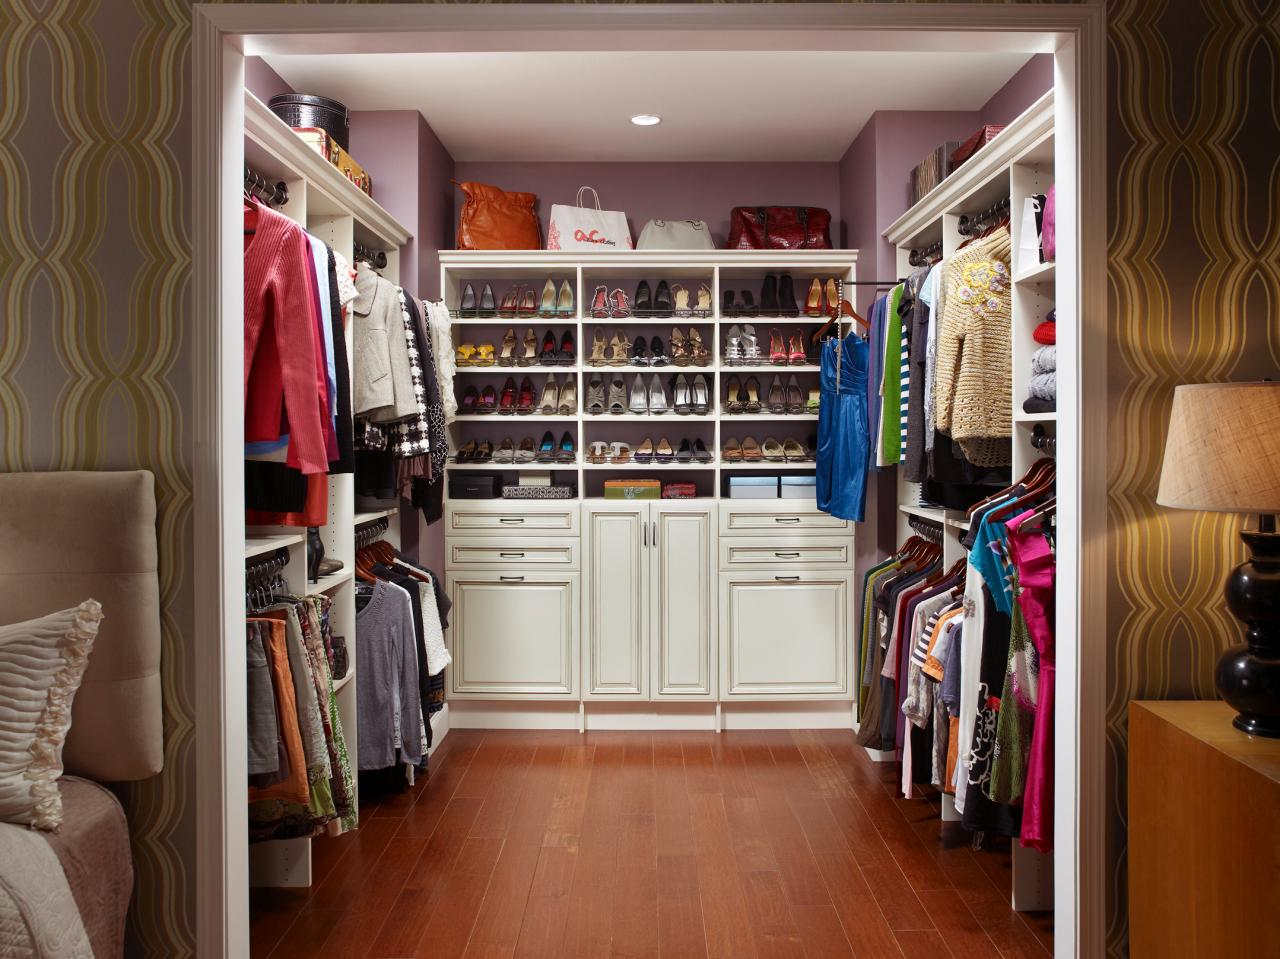 ikea walk wood room closet organization ideas how in small sliding to a with divider organize doors